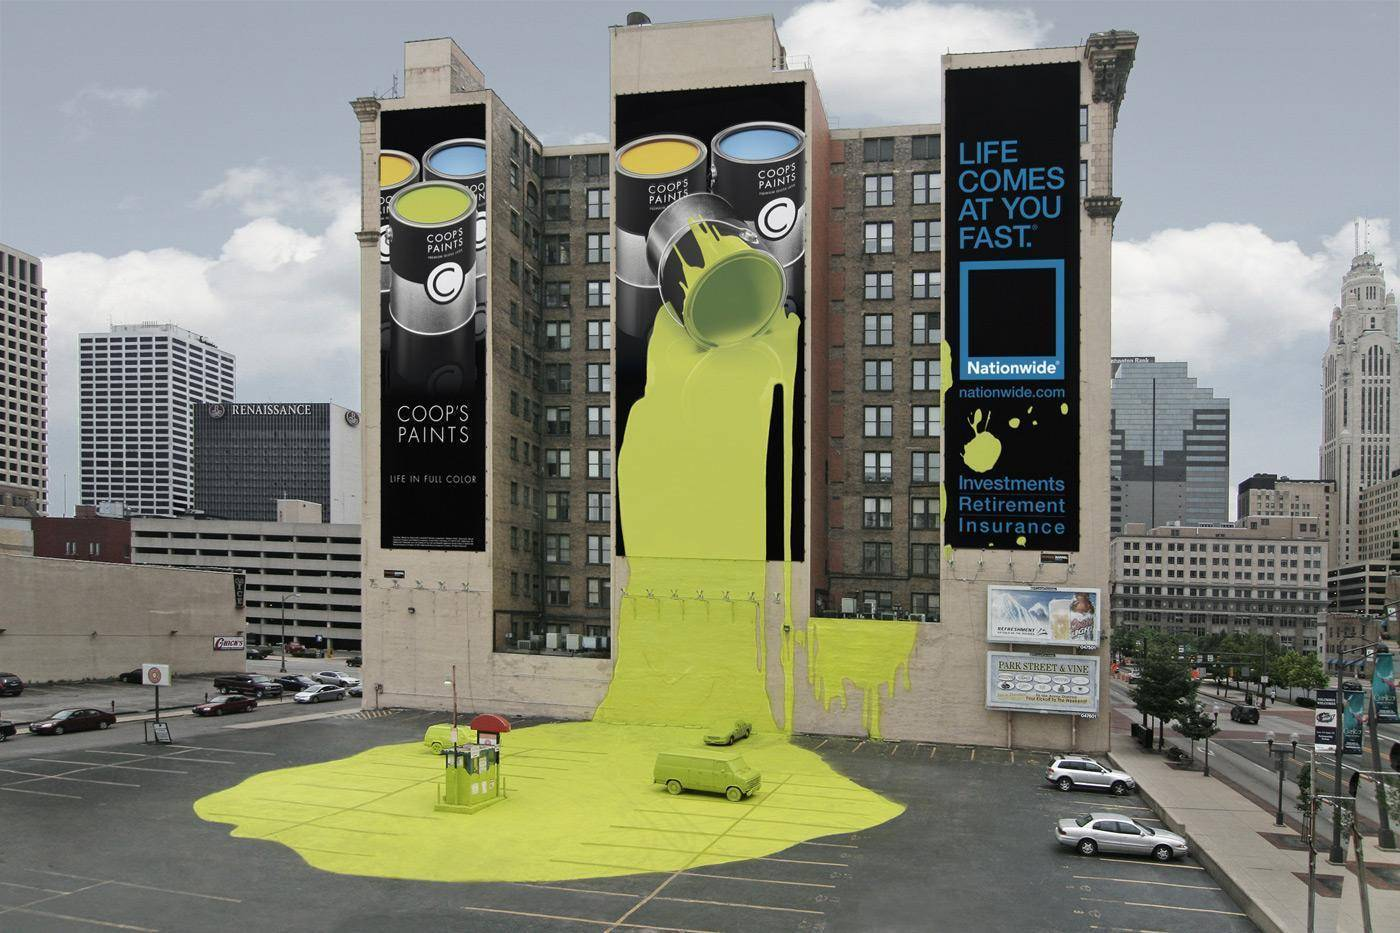 Billboard of paint spills onto parking lot